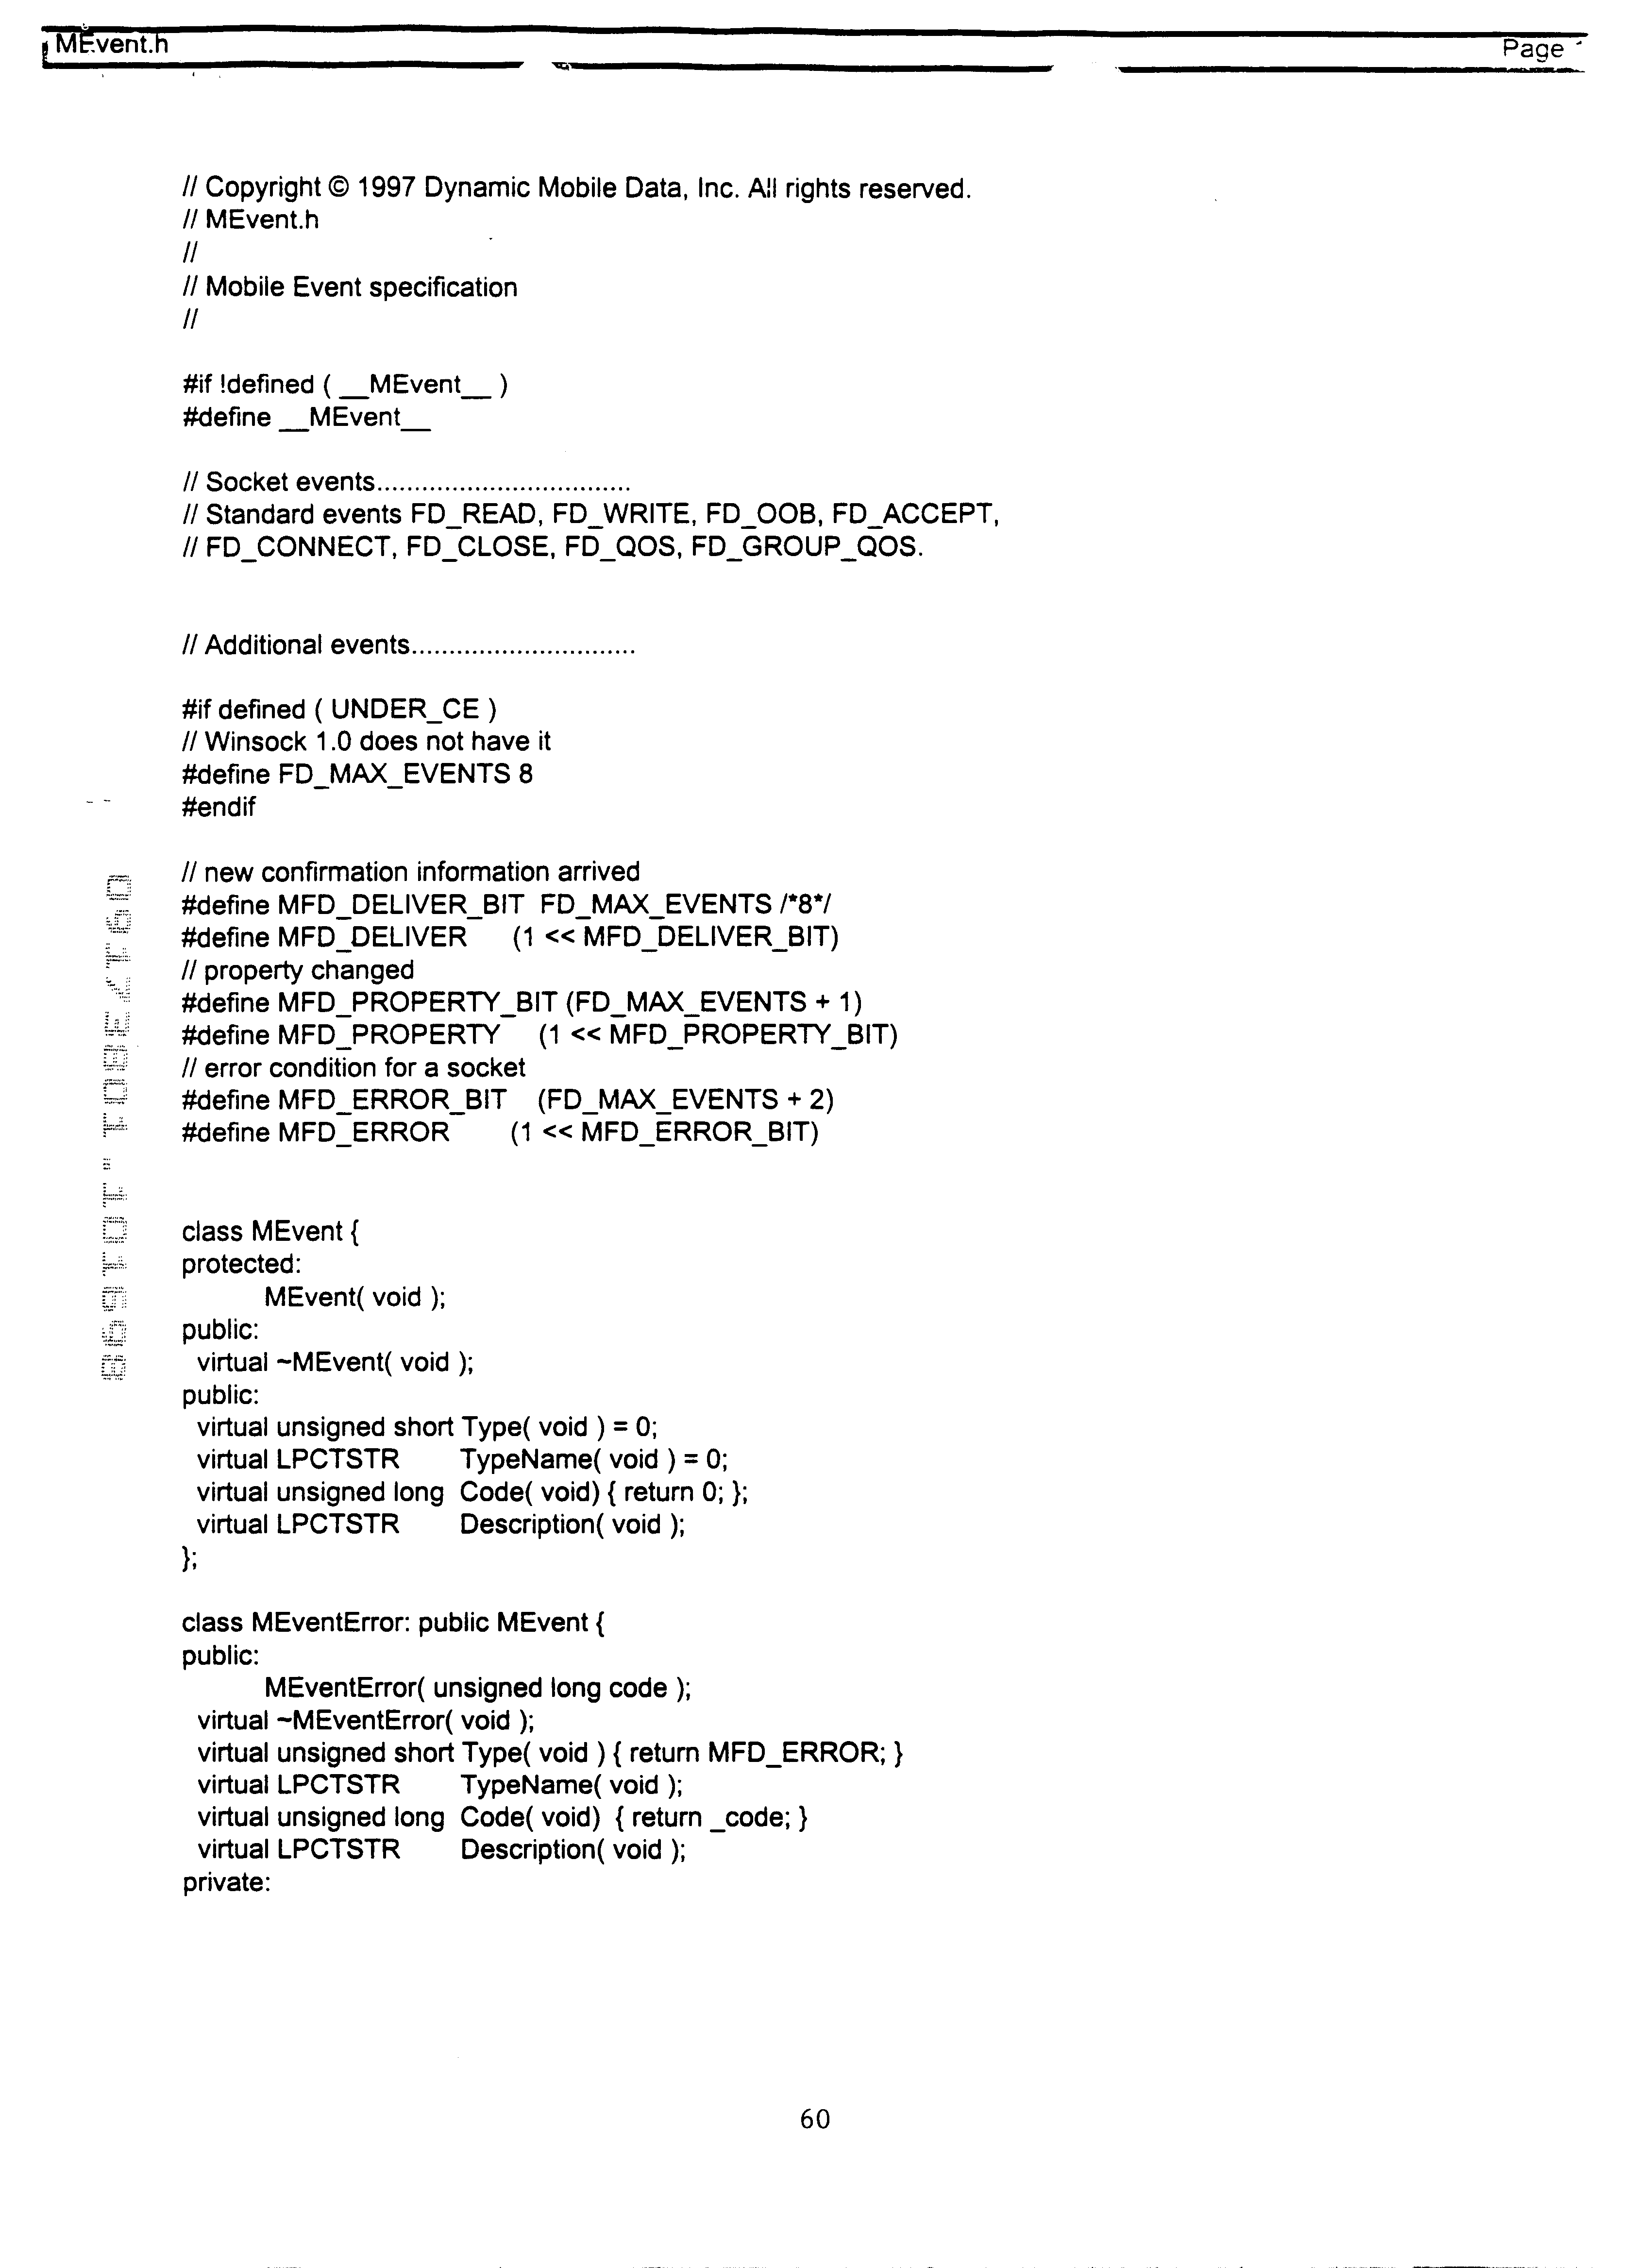 US6628965B1 - Computer method and system for management and